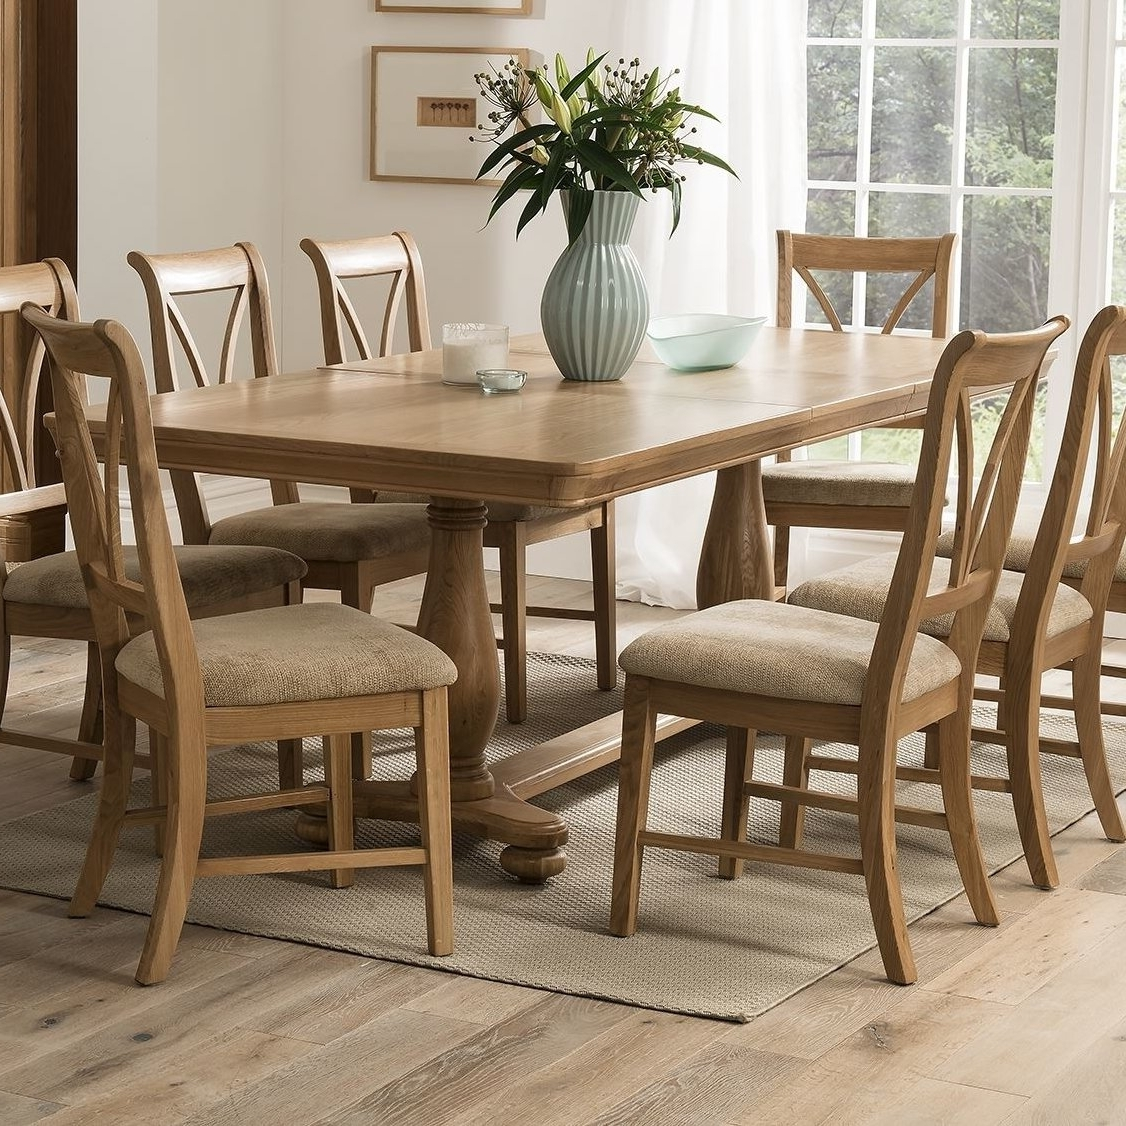 Homestead Living Rowan Extendable Dining Table And 6 Chairs With 2018 Extendable Dining Table And 6 Chairs (View 13 of 25)